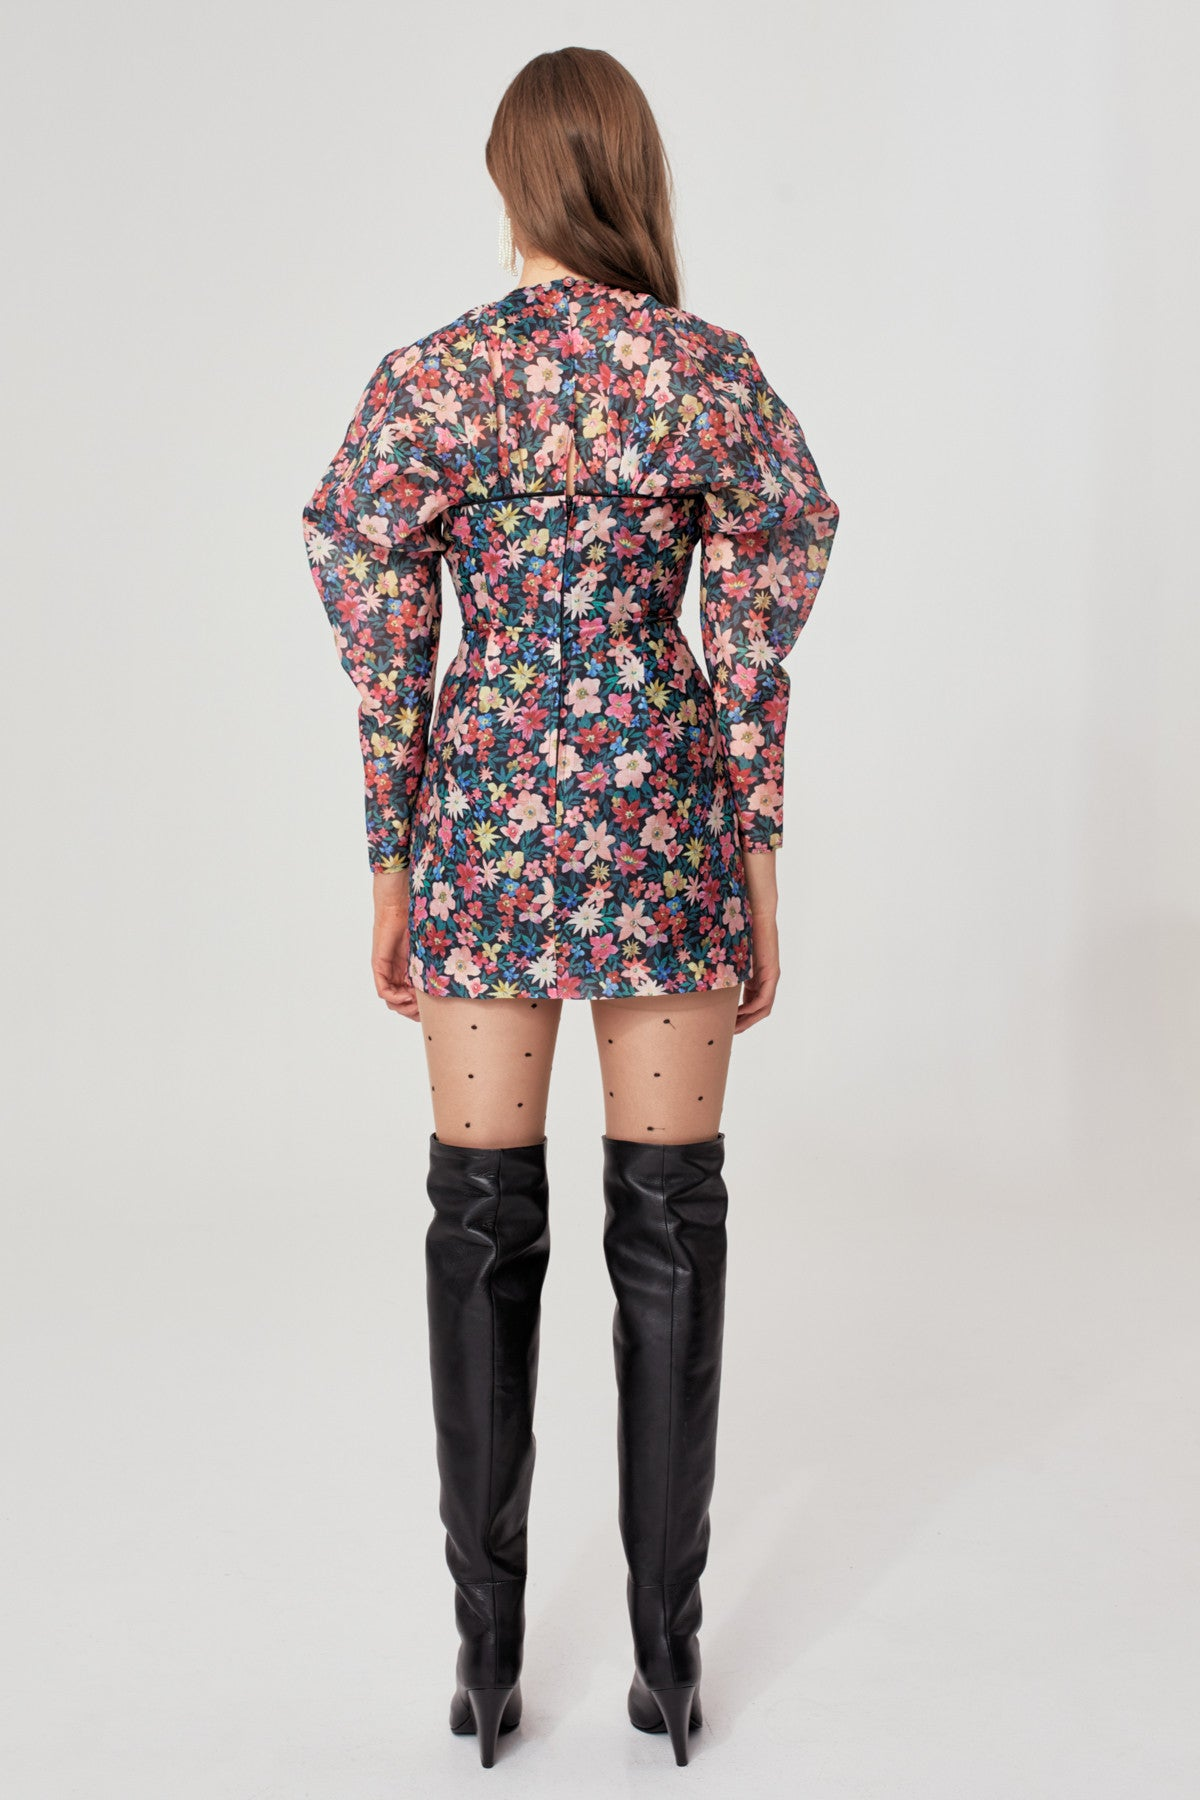 AND EVER MORE LONG SLEEVE DRESS black garden floral